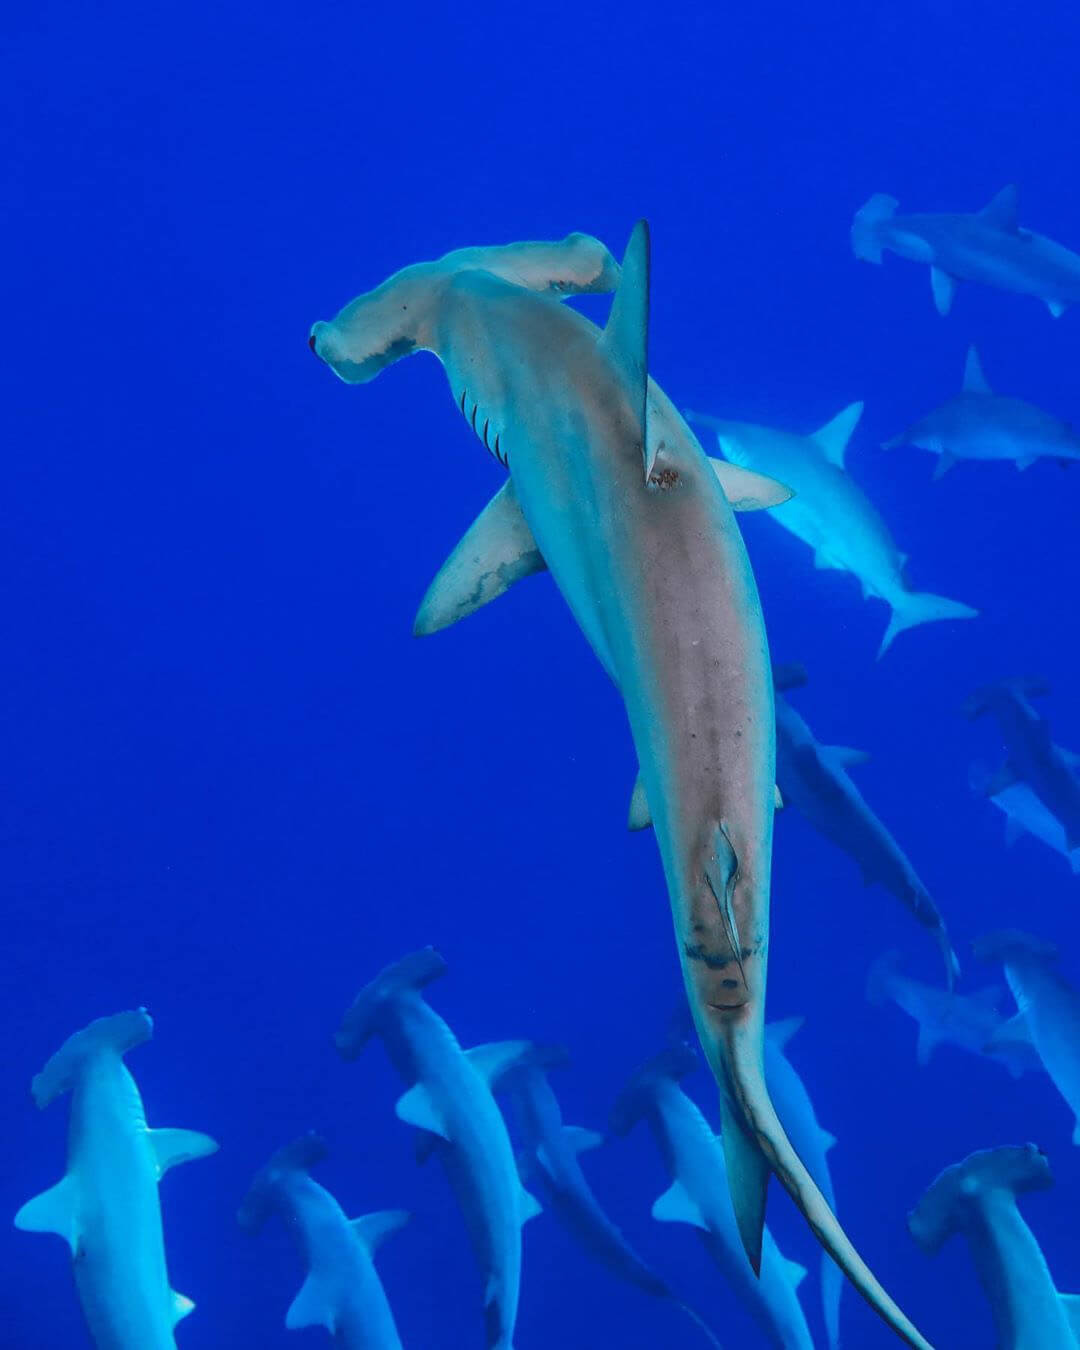 An image of a school of hammerhead sharks swimming in the deep blue waters off the coast of Hawaii.